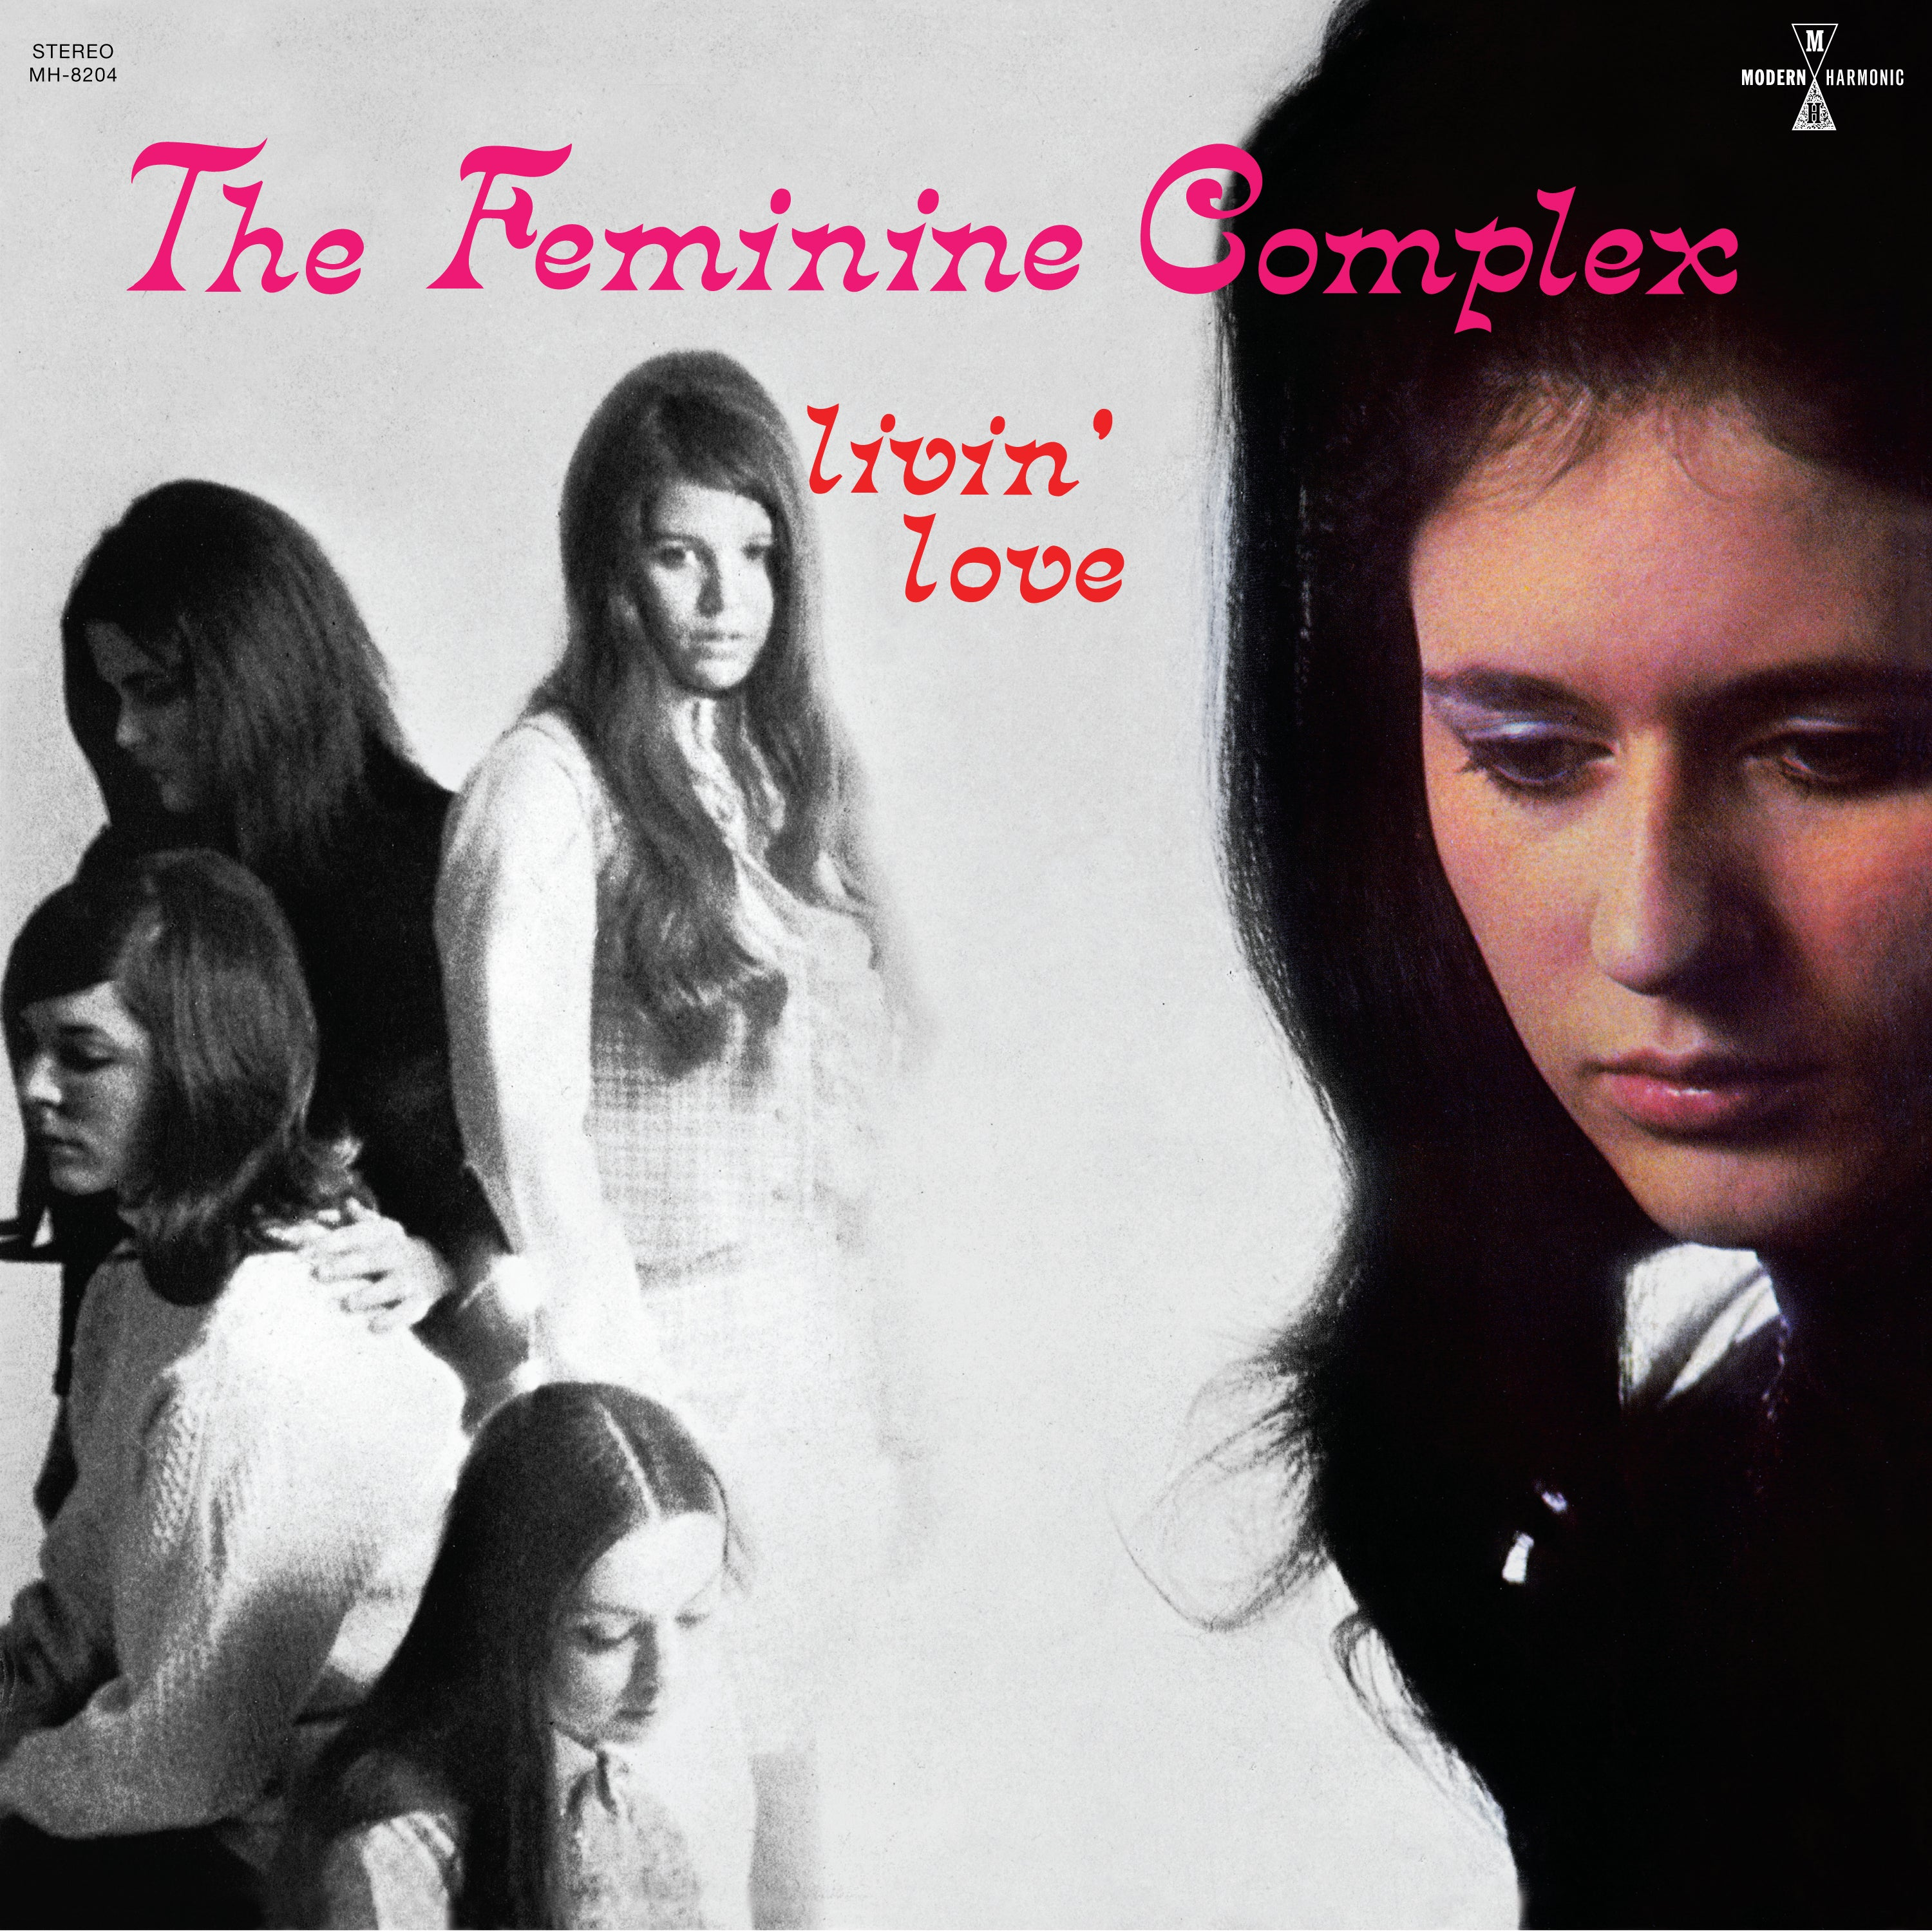 The Feminine Complex - Livin' Love (RSD 2020 Drop Two) Multiple Formats